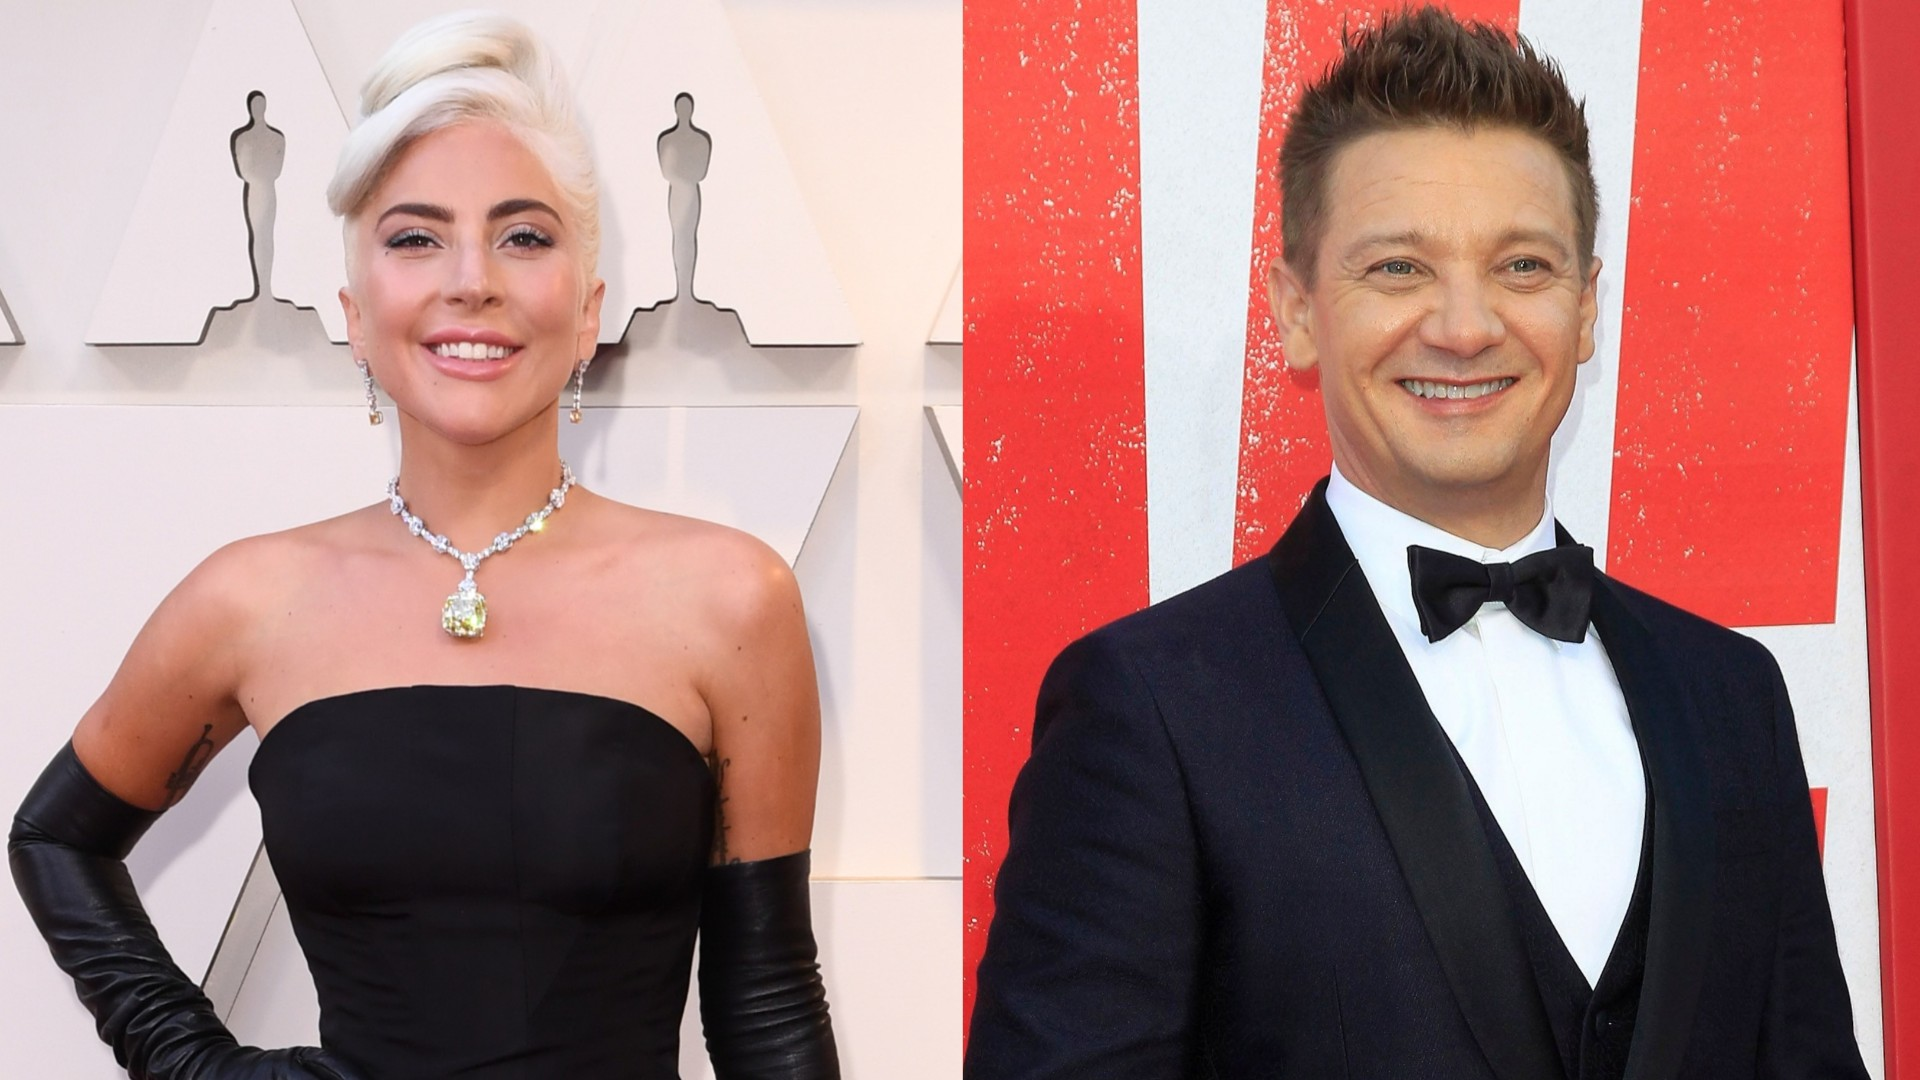 Lady Gaga Reportedly Linked To Jeremy Renner Sheknows